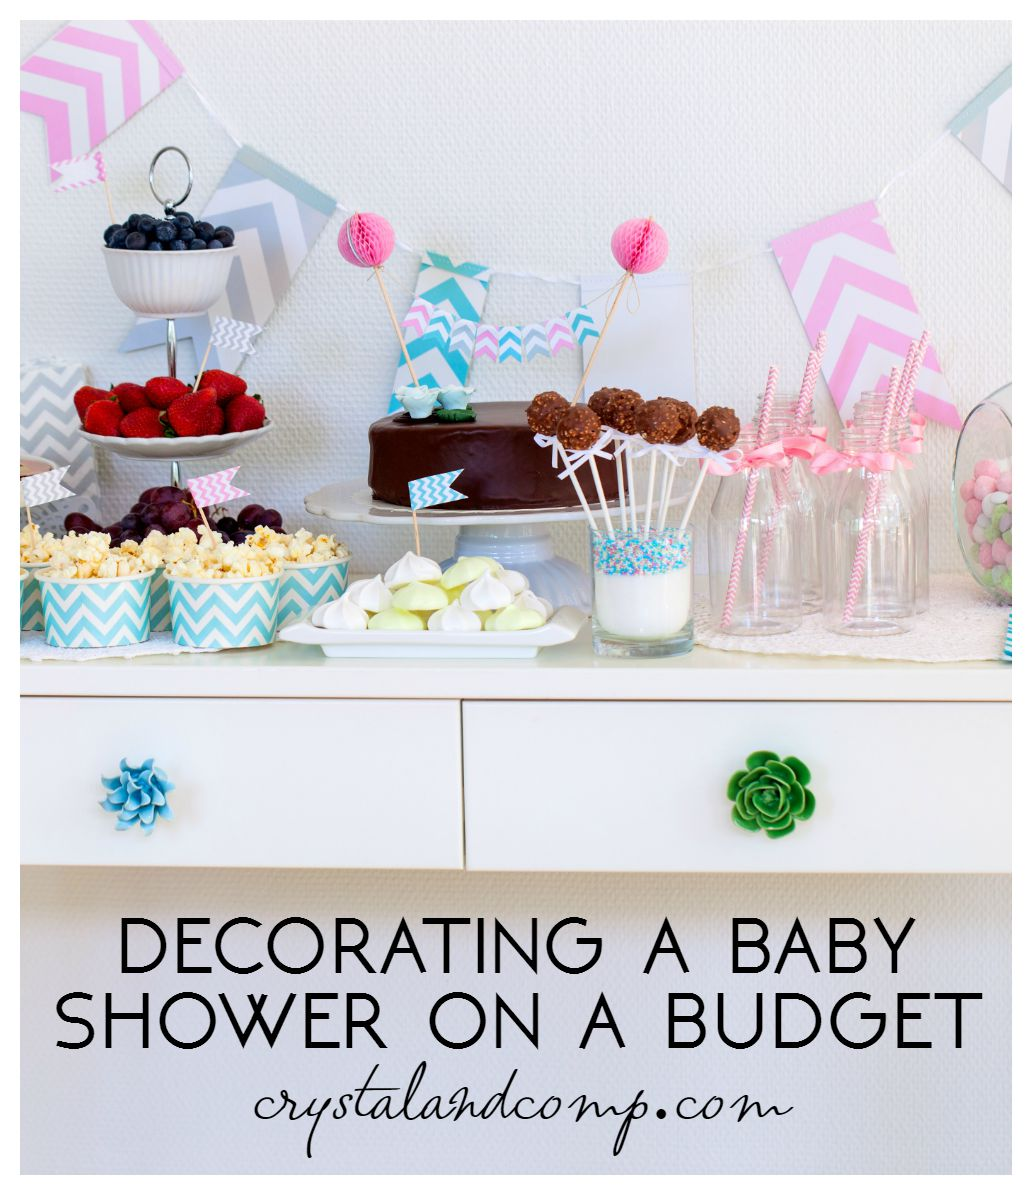 Baby Shower Decoration Ideas For Cheap tips for decorating a baby shower | crystalandcomp